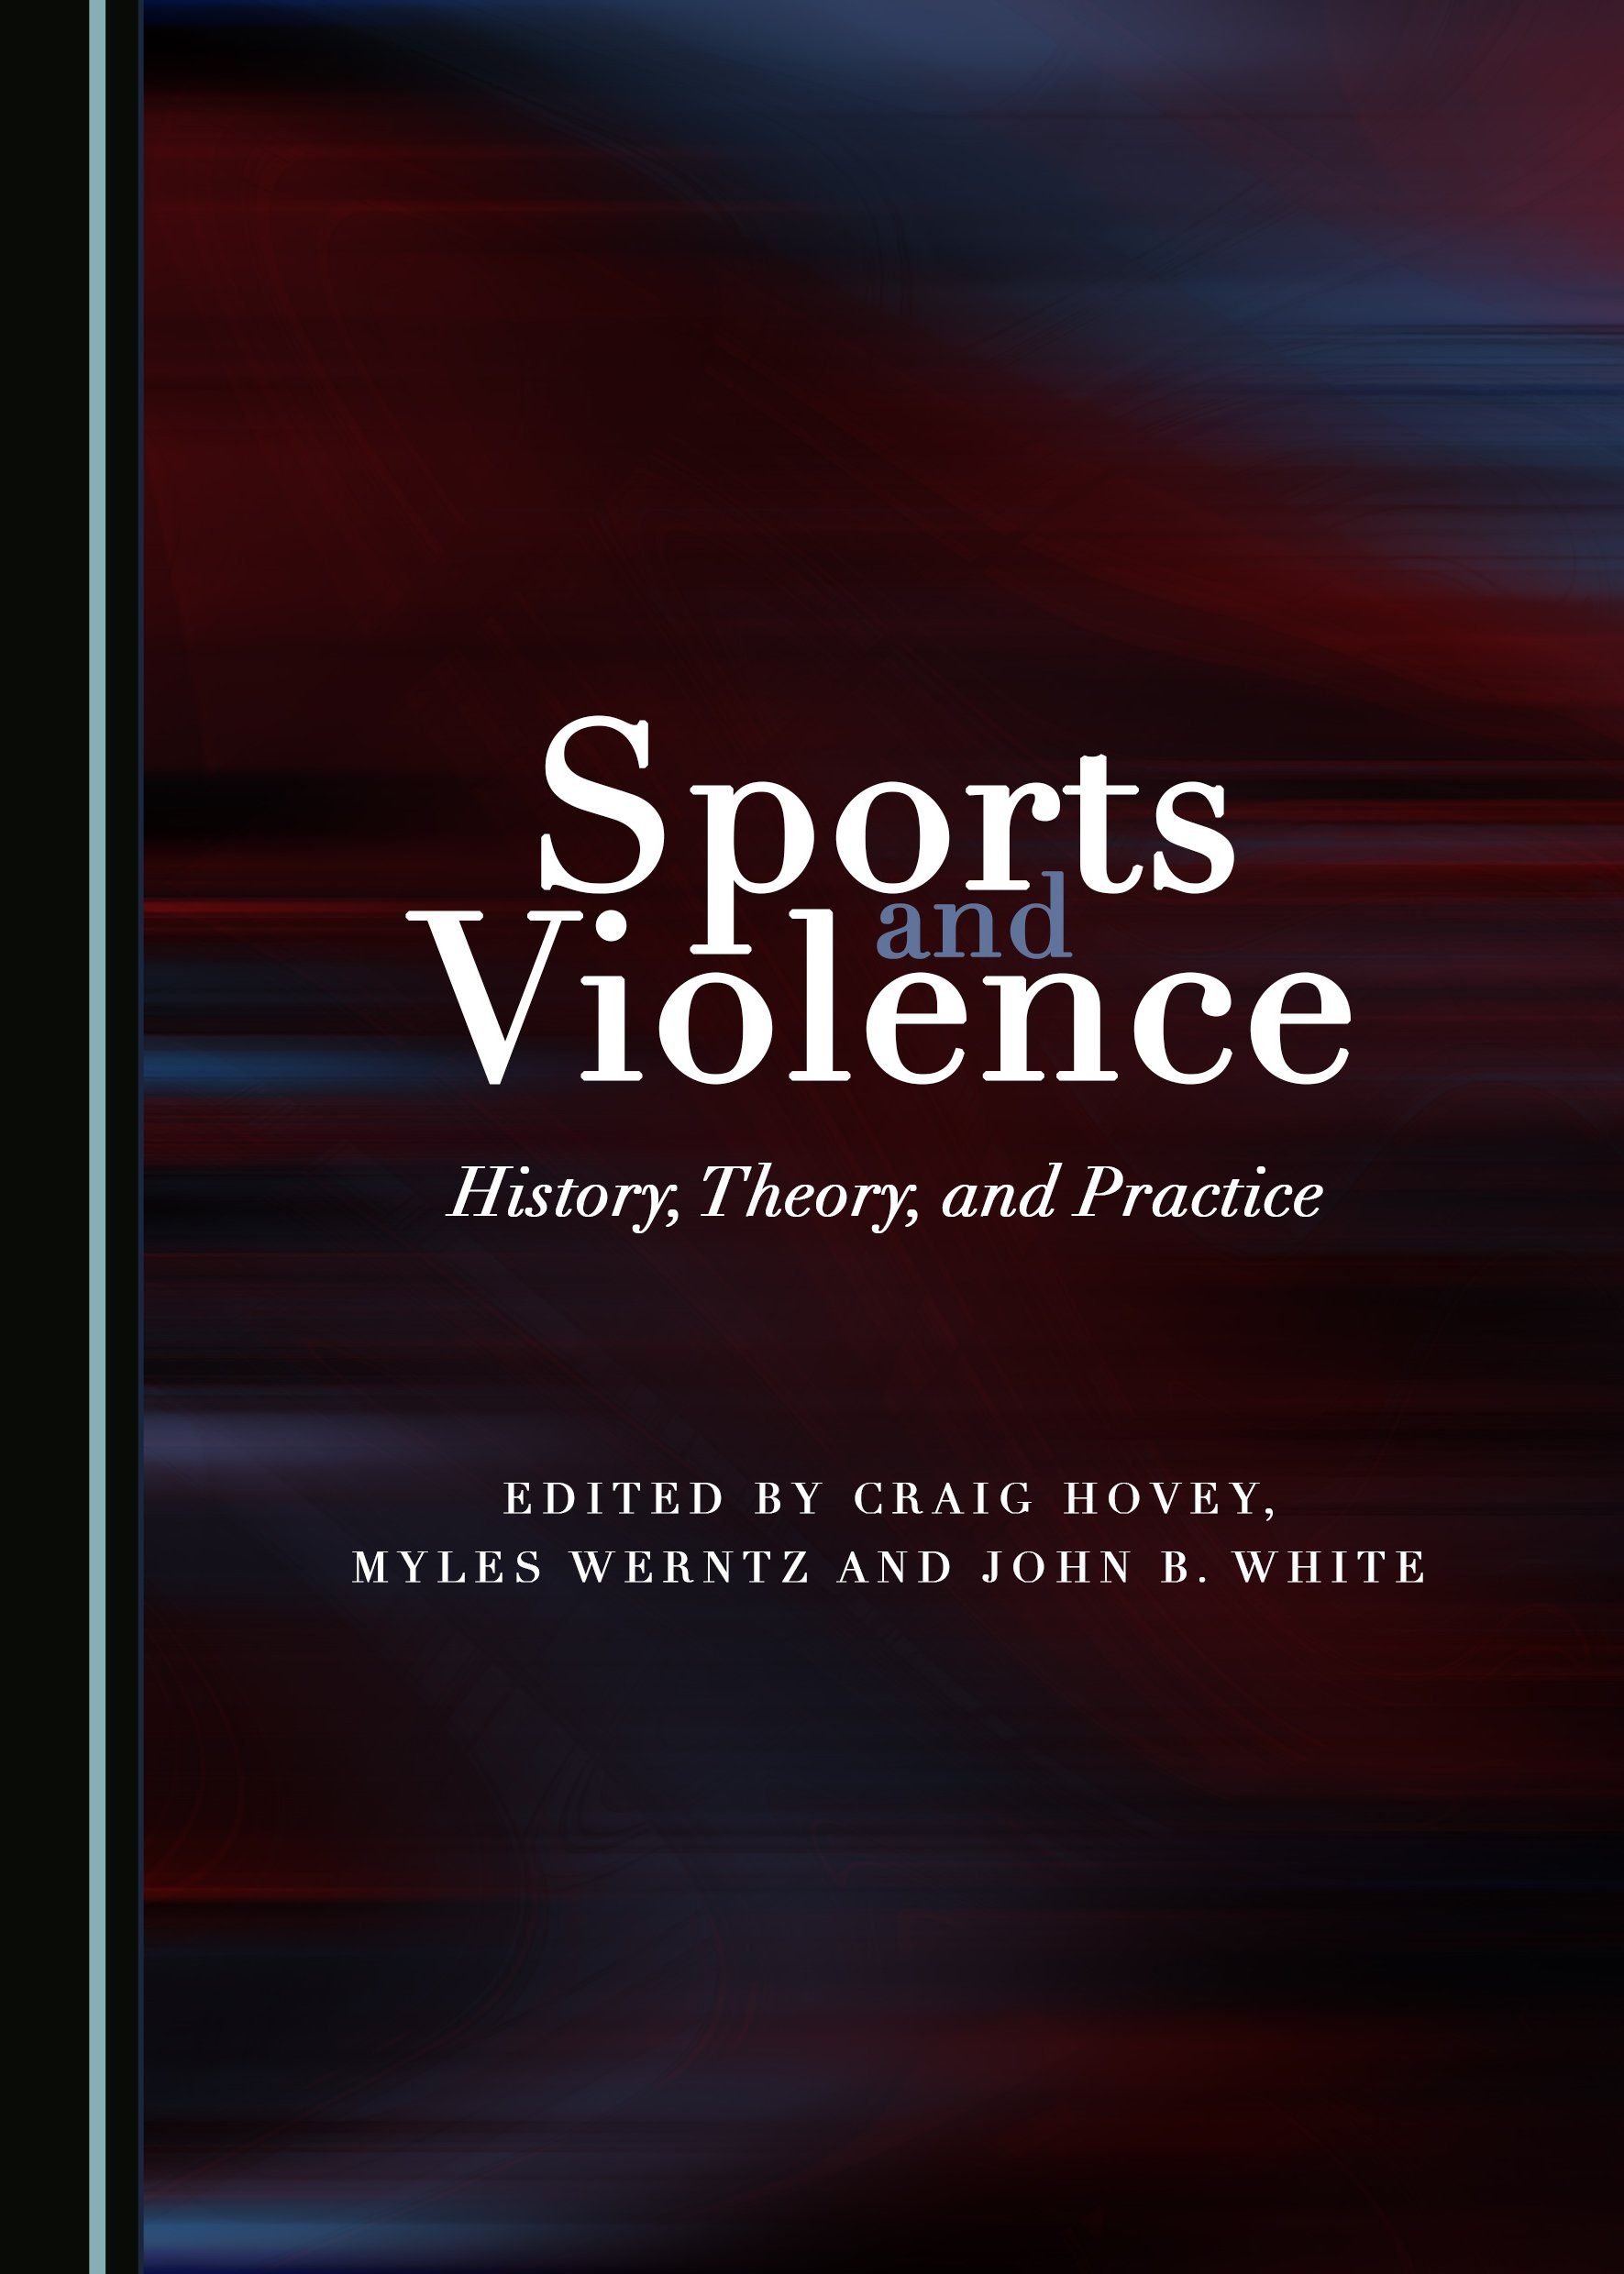 Sports and Violence: History, Theory, and Practice